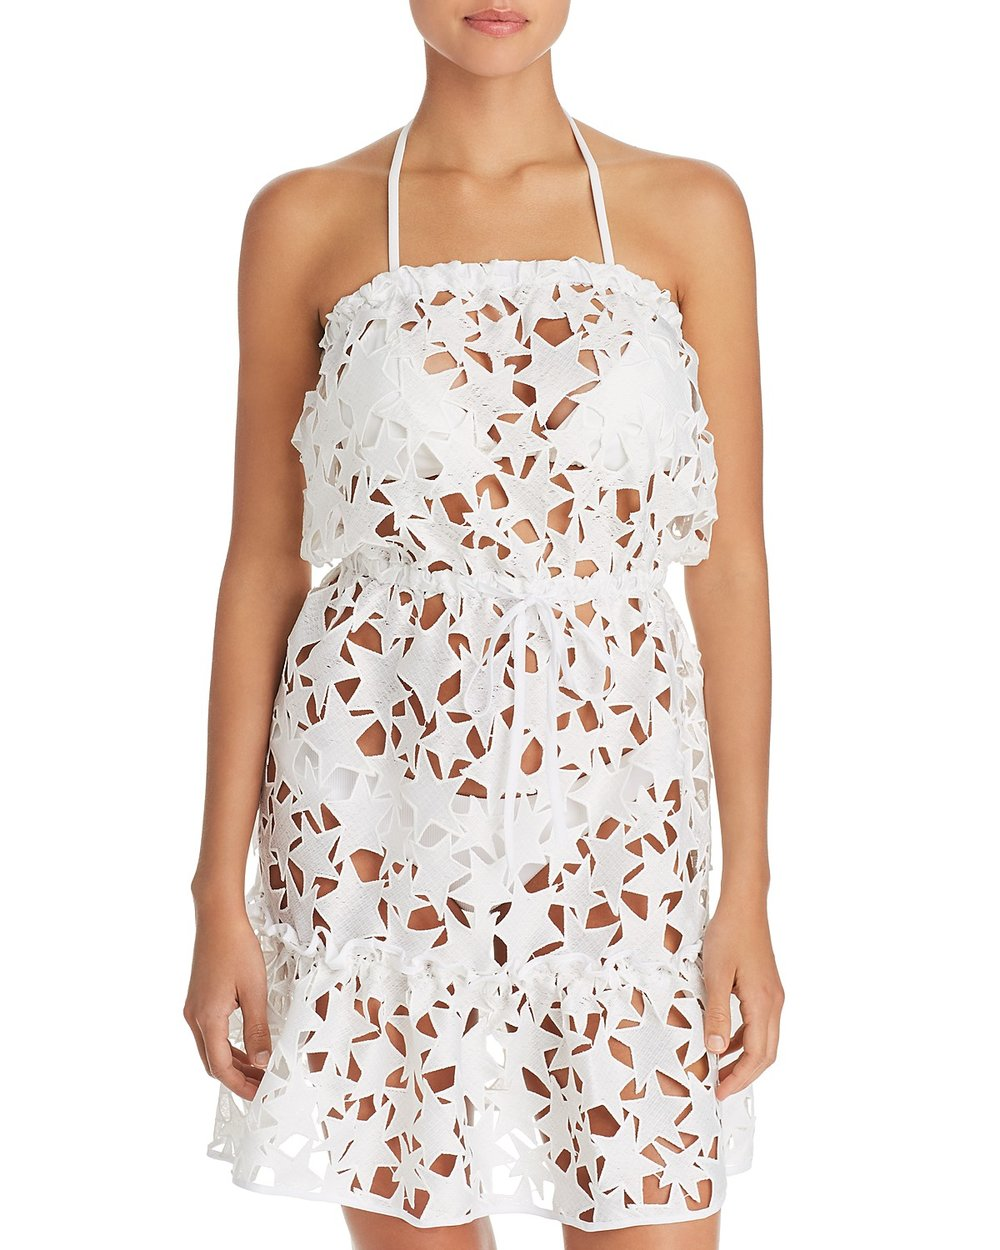 Milly Sheer Cover Up Dress.jpg